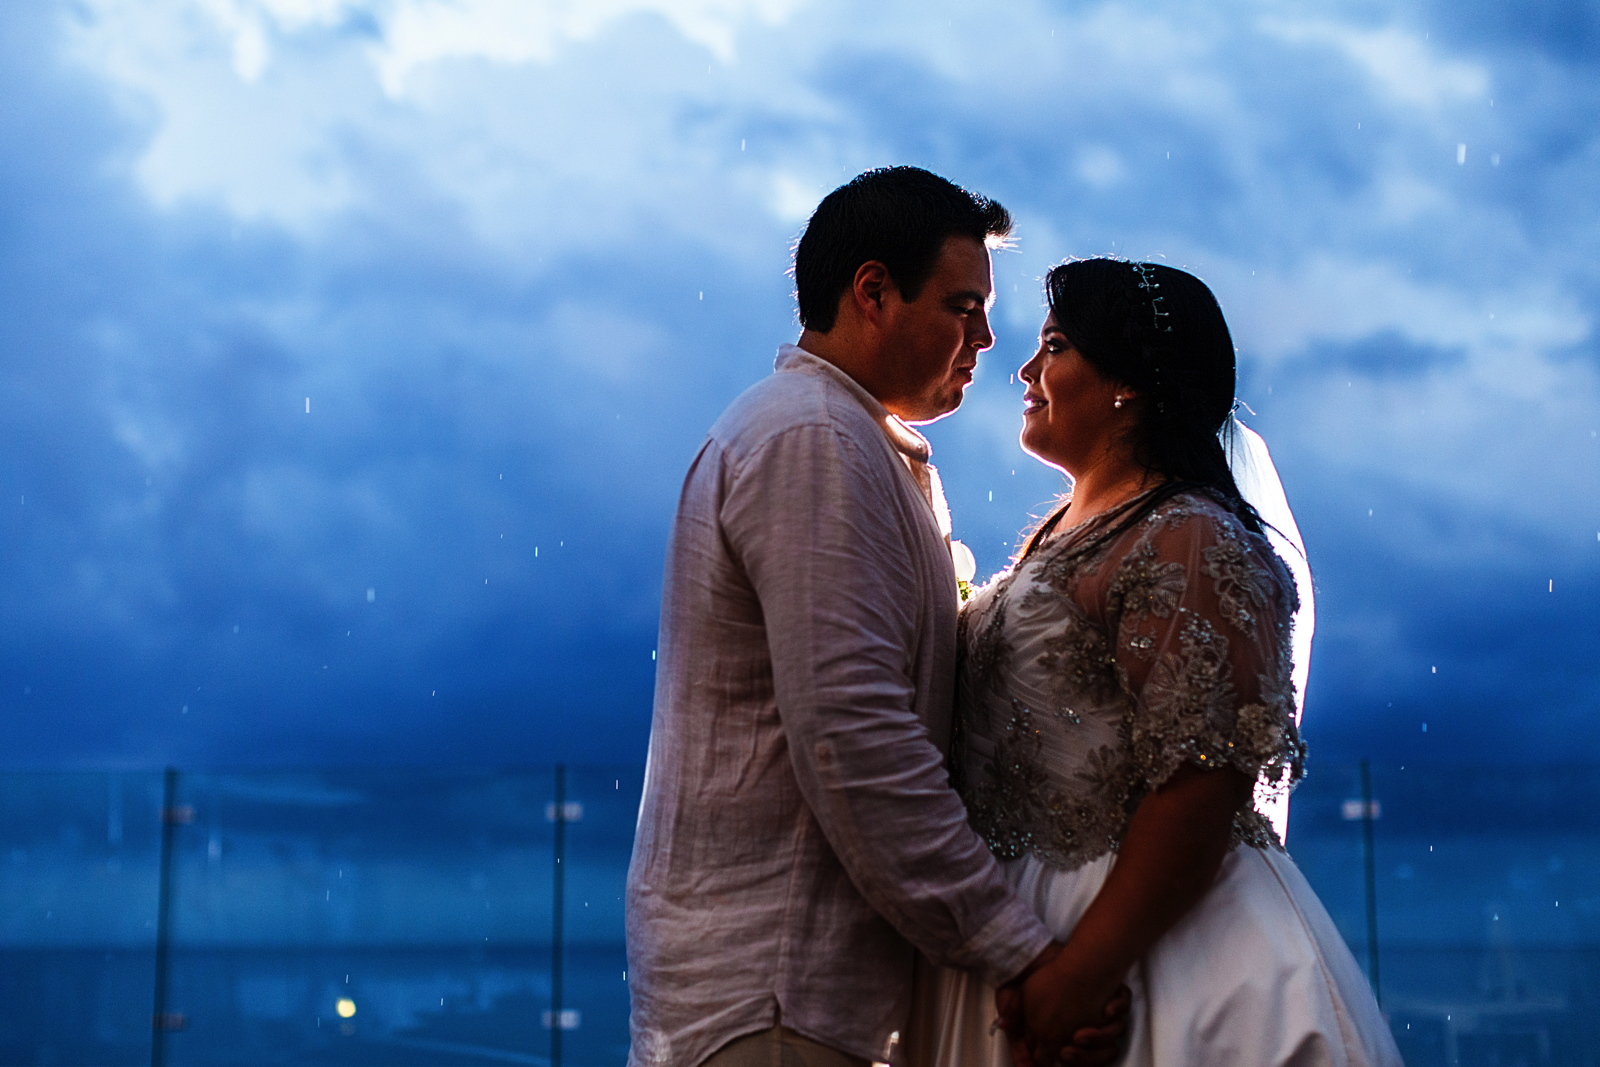 Couple standing on the rain backlight with flash - Iberostar Mexico